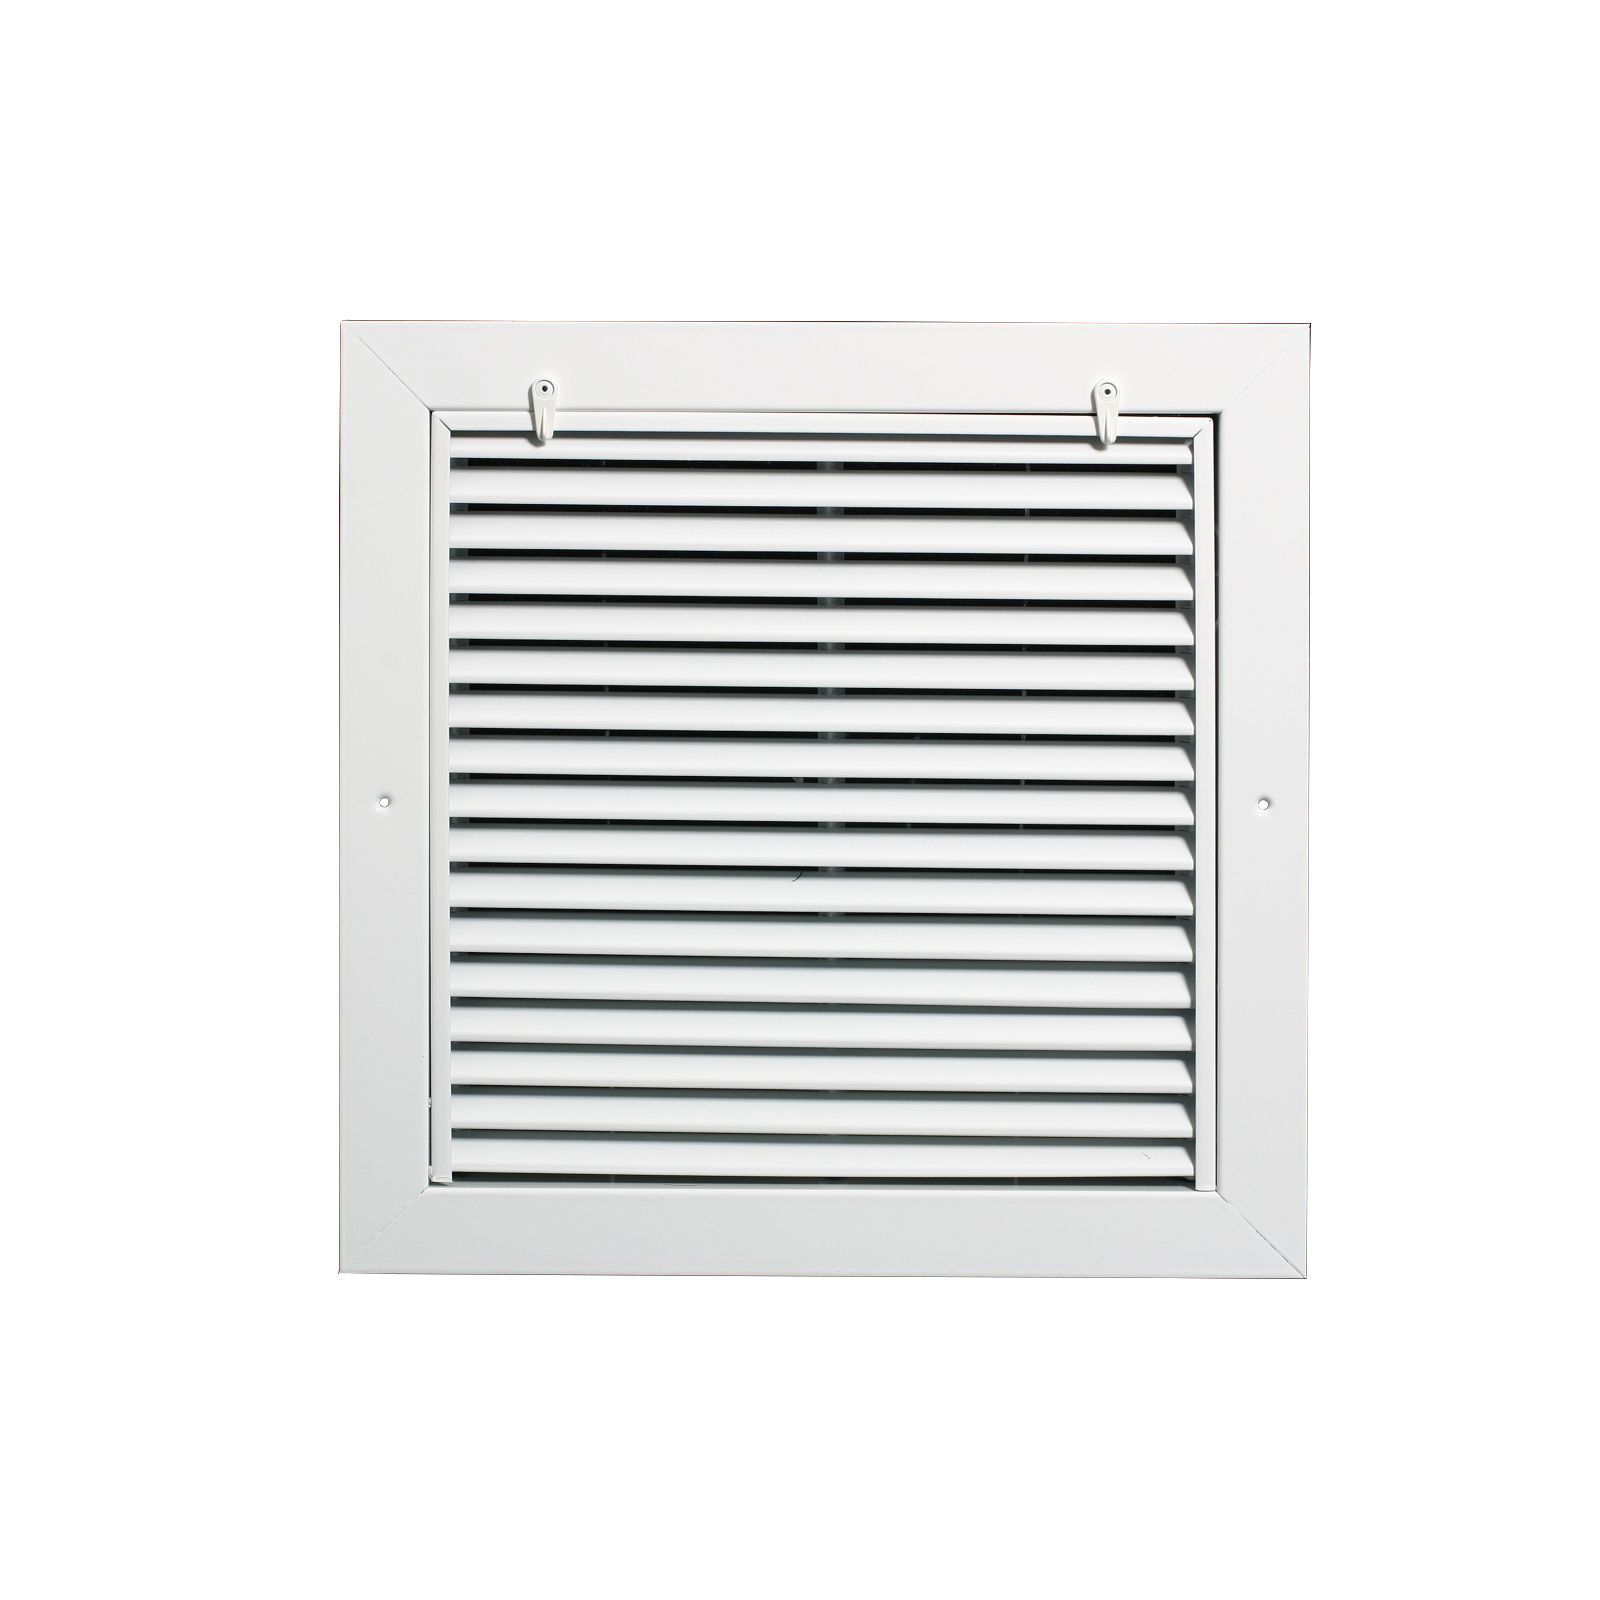 "Grille Tech RAFGS2430 - Aluminum Return Air Filter Grille, Grille Size 24"" X 30"" White"